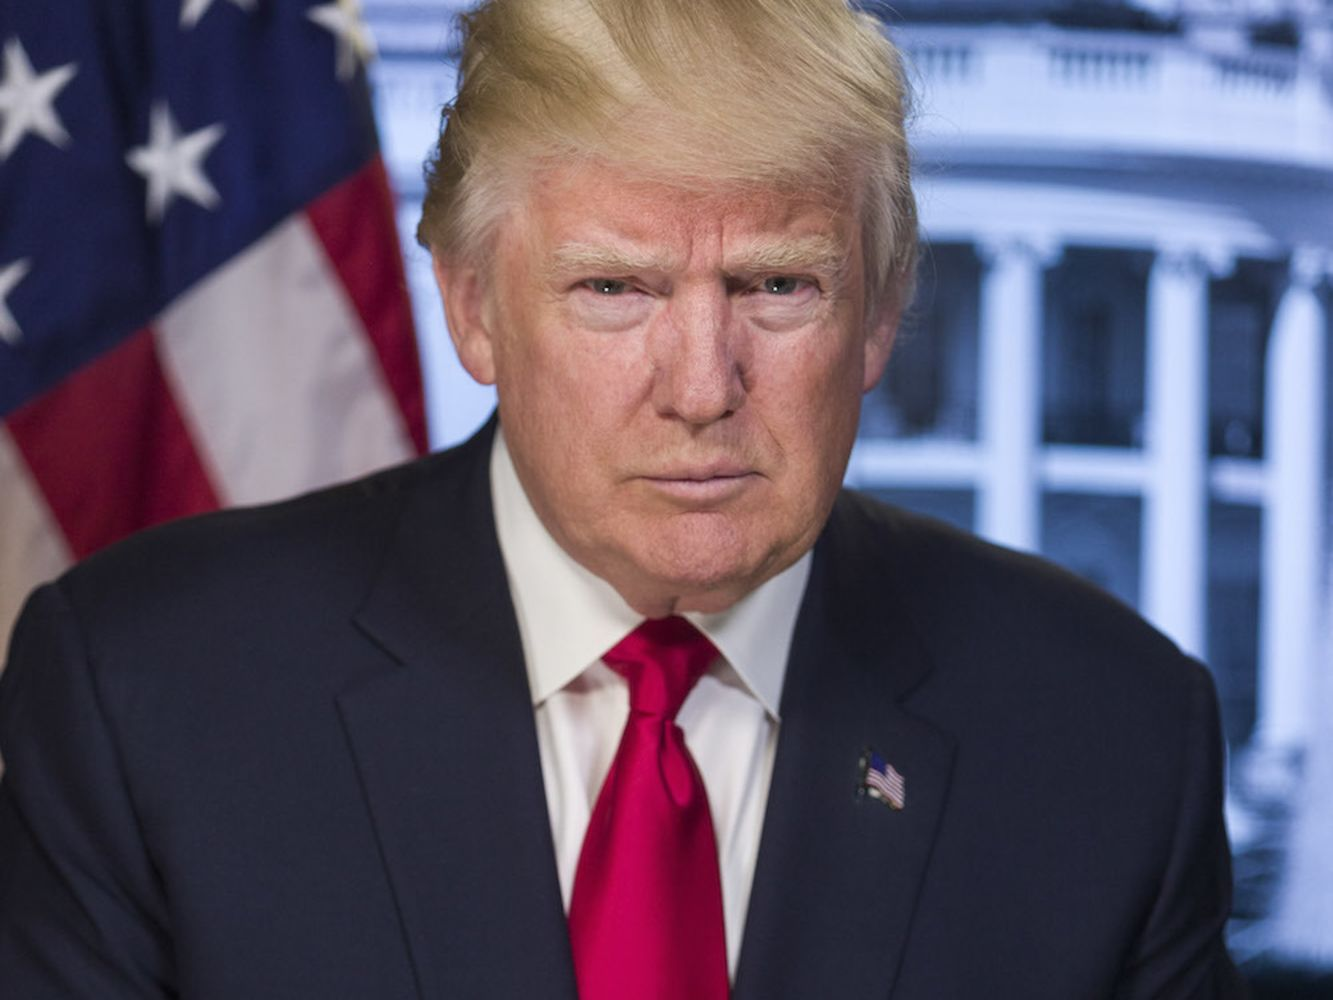 Donald trump official portrait weujmd